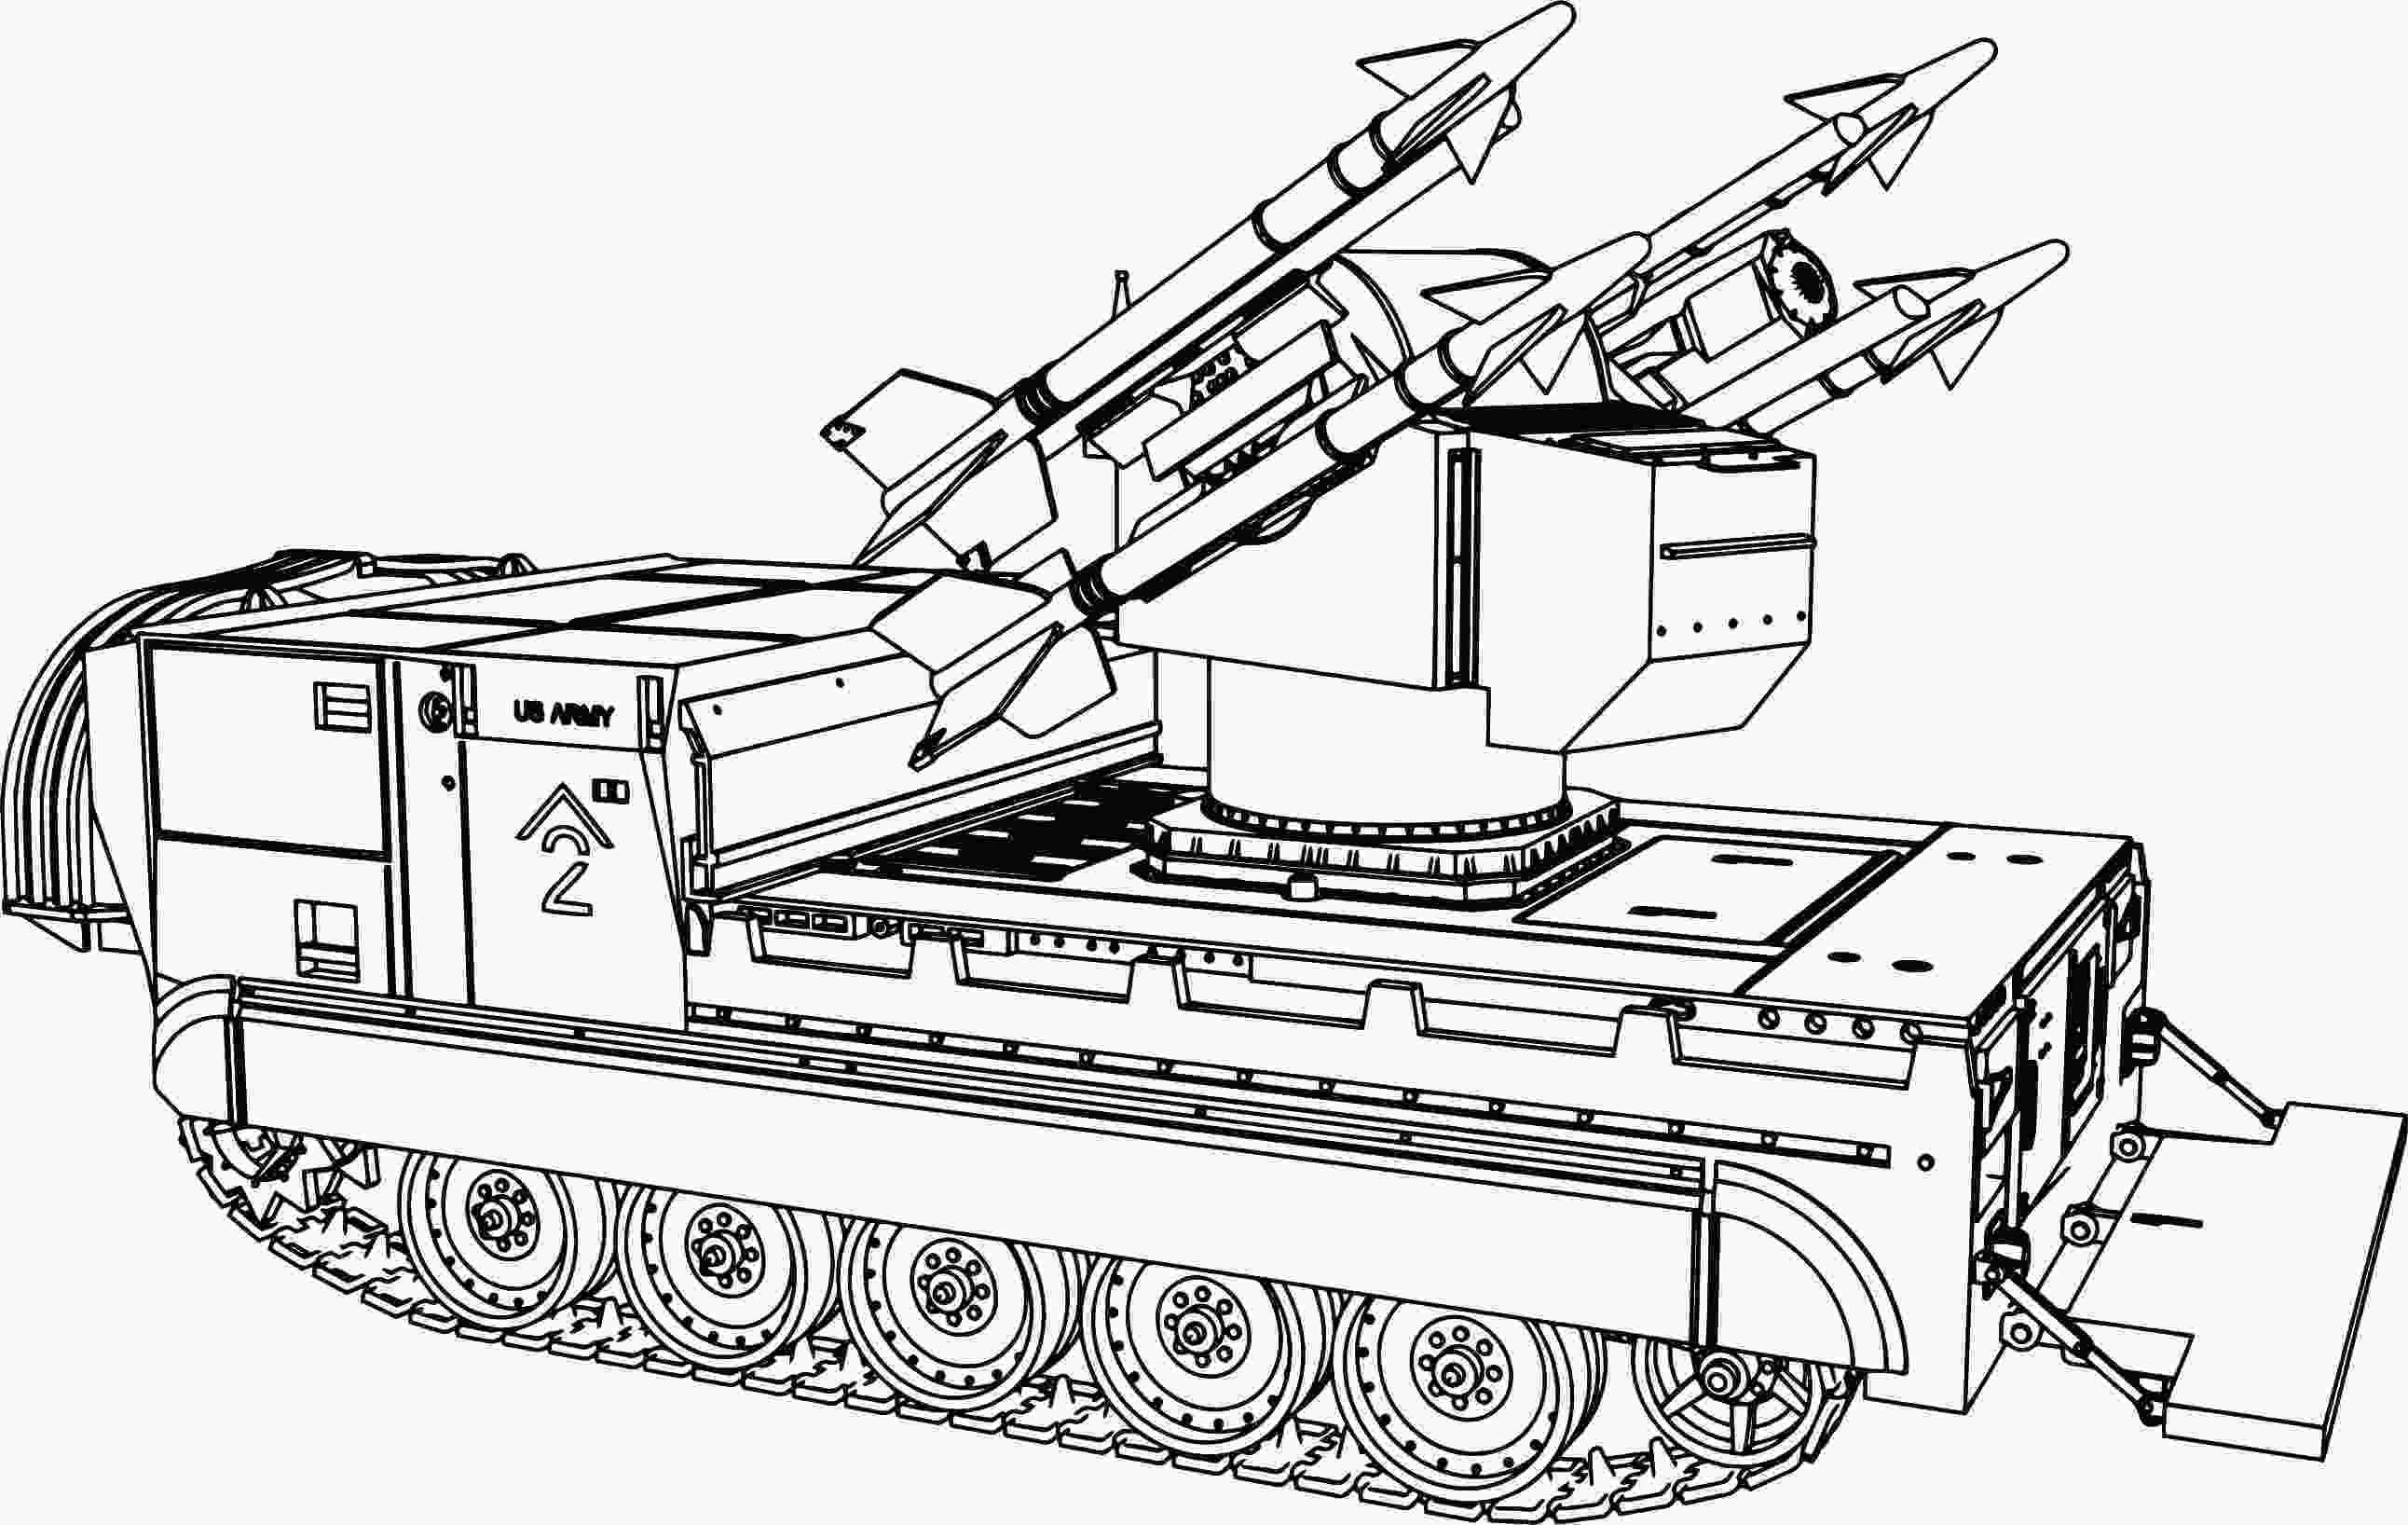 Army Tank Coloring Page Halloweencoloringpages Army Tank Coloring Page M730a1 Tank Coloring Page Wecoloringpag Tank Drawing Coloring Pages Free Coloring Pages